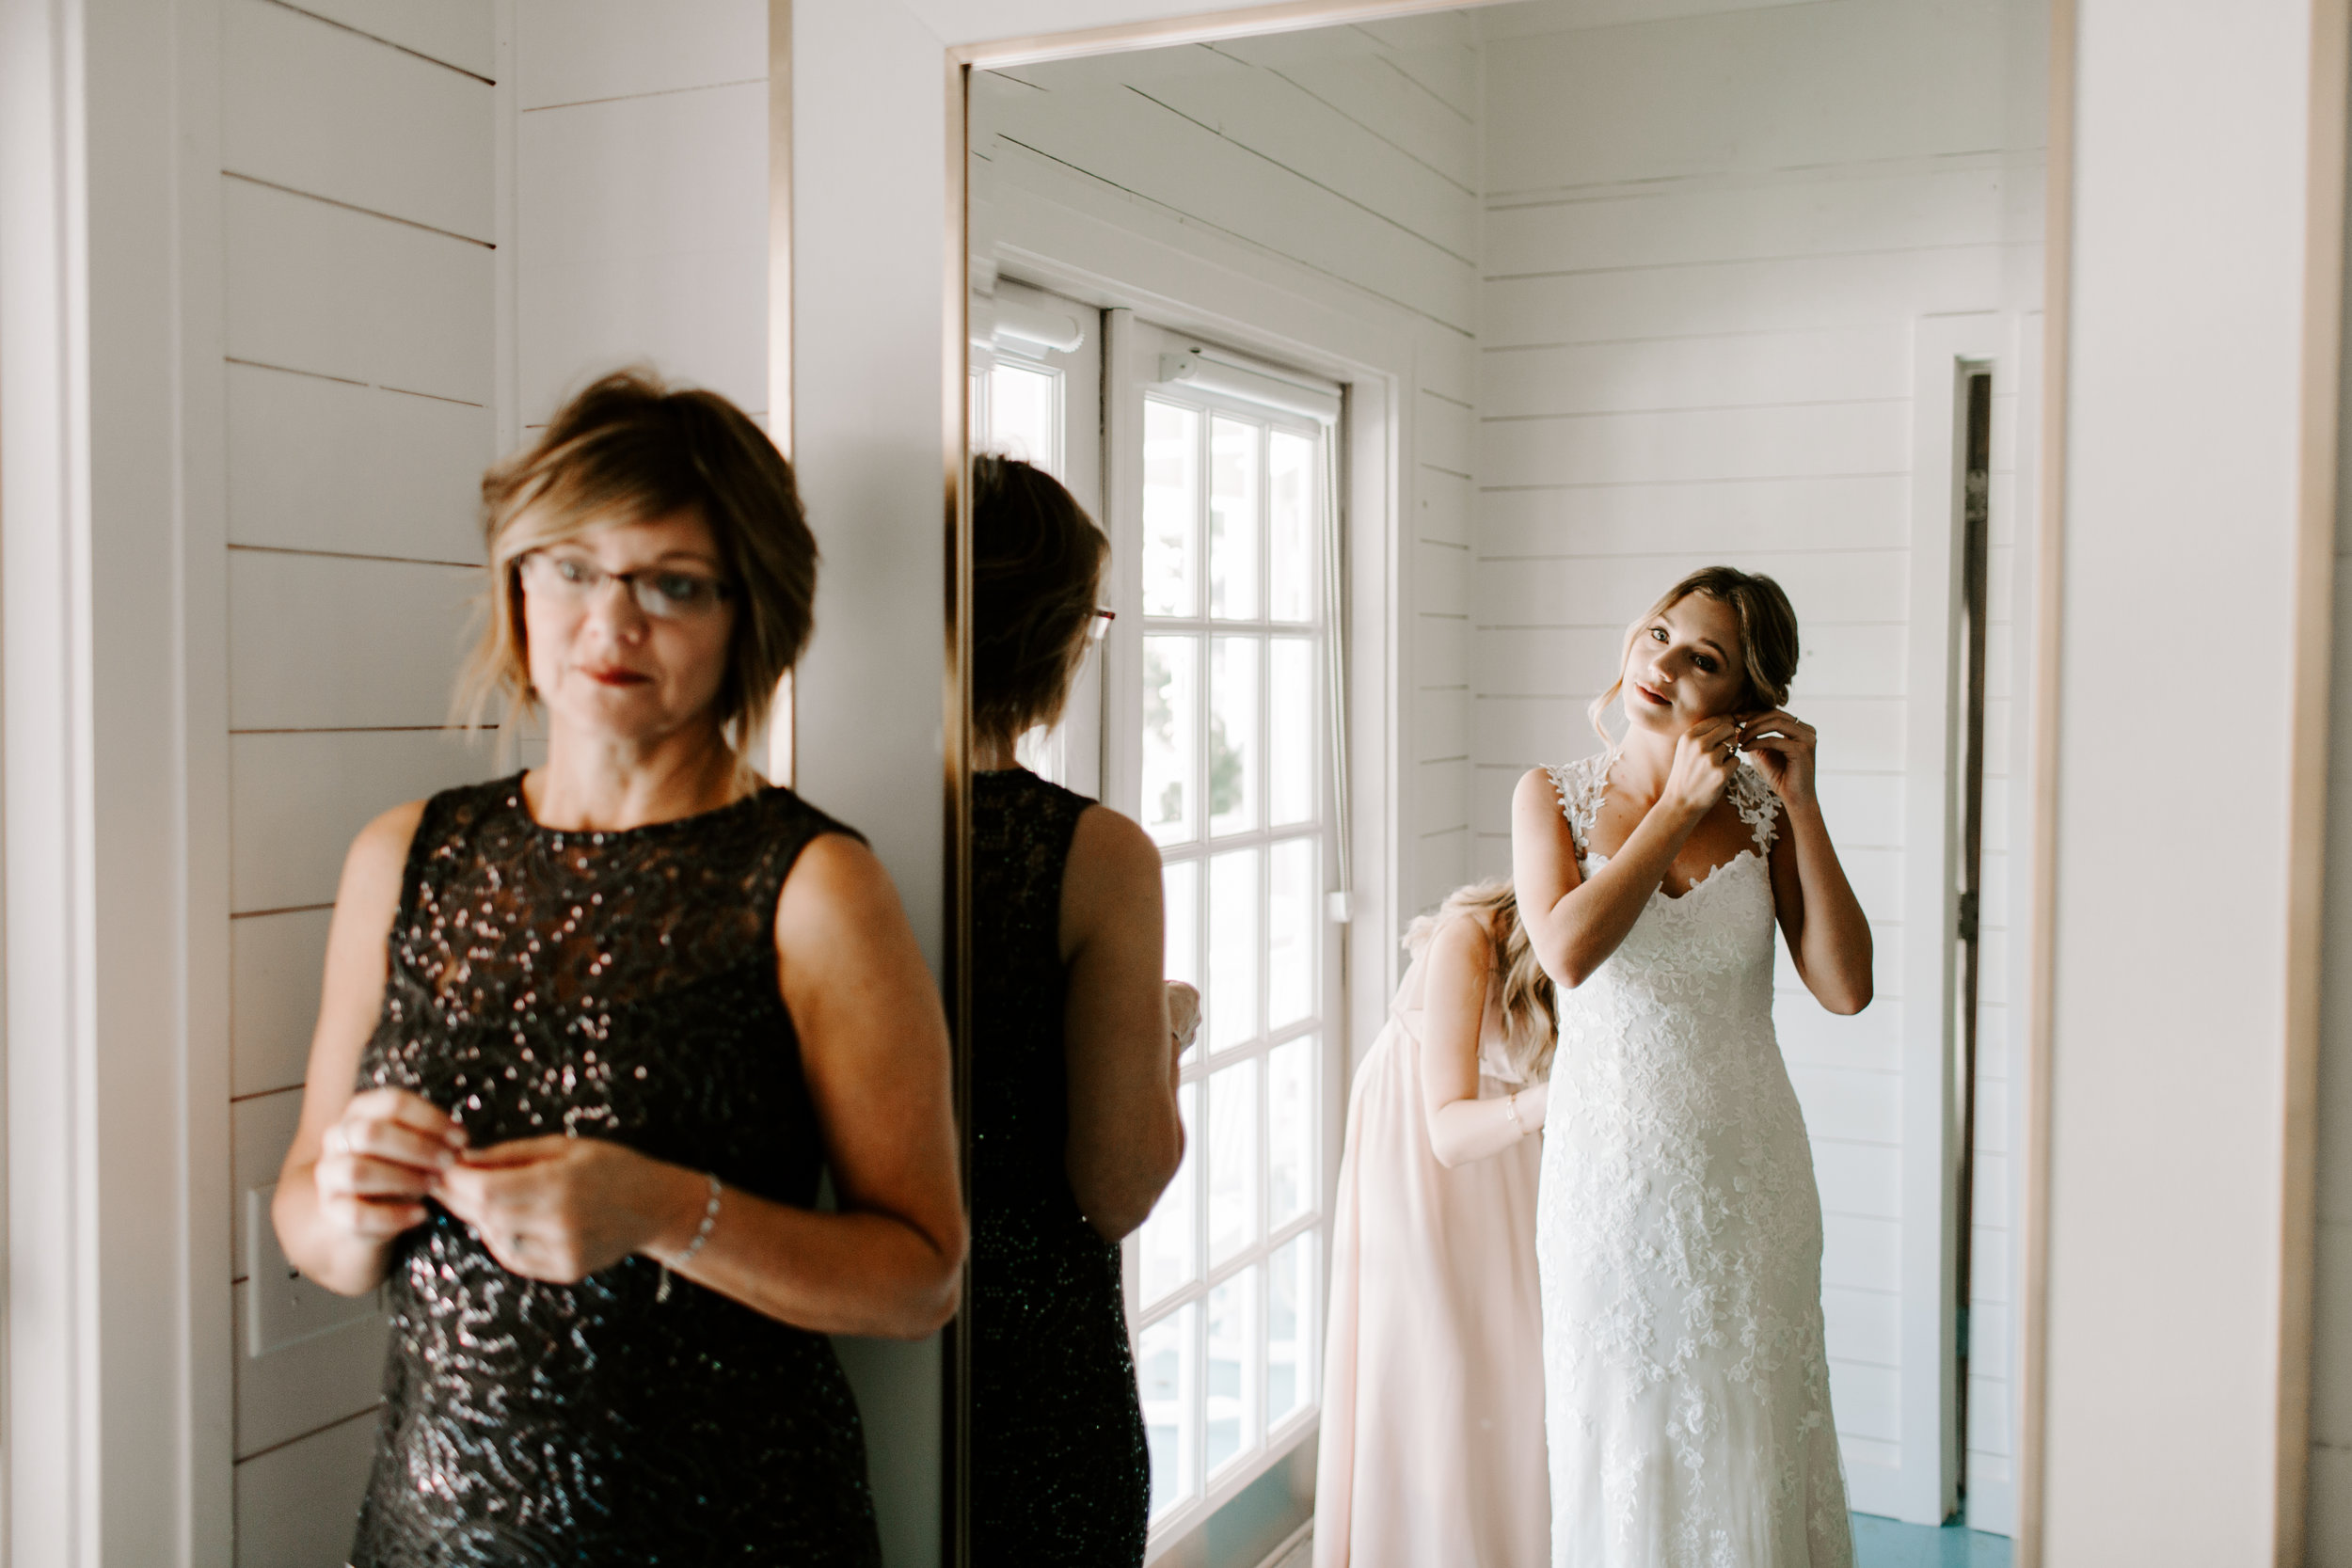 cailin+hails_destination_wedding_fairhope_daphne_mobile_alabama_madisonrylee_0037.jpg